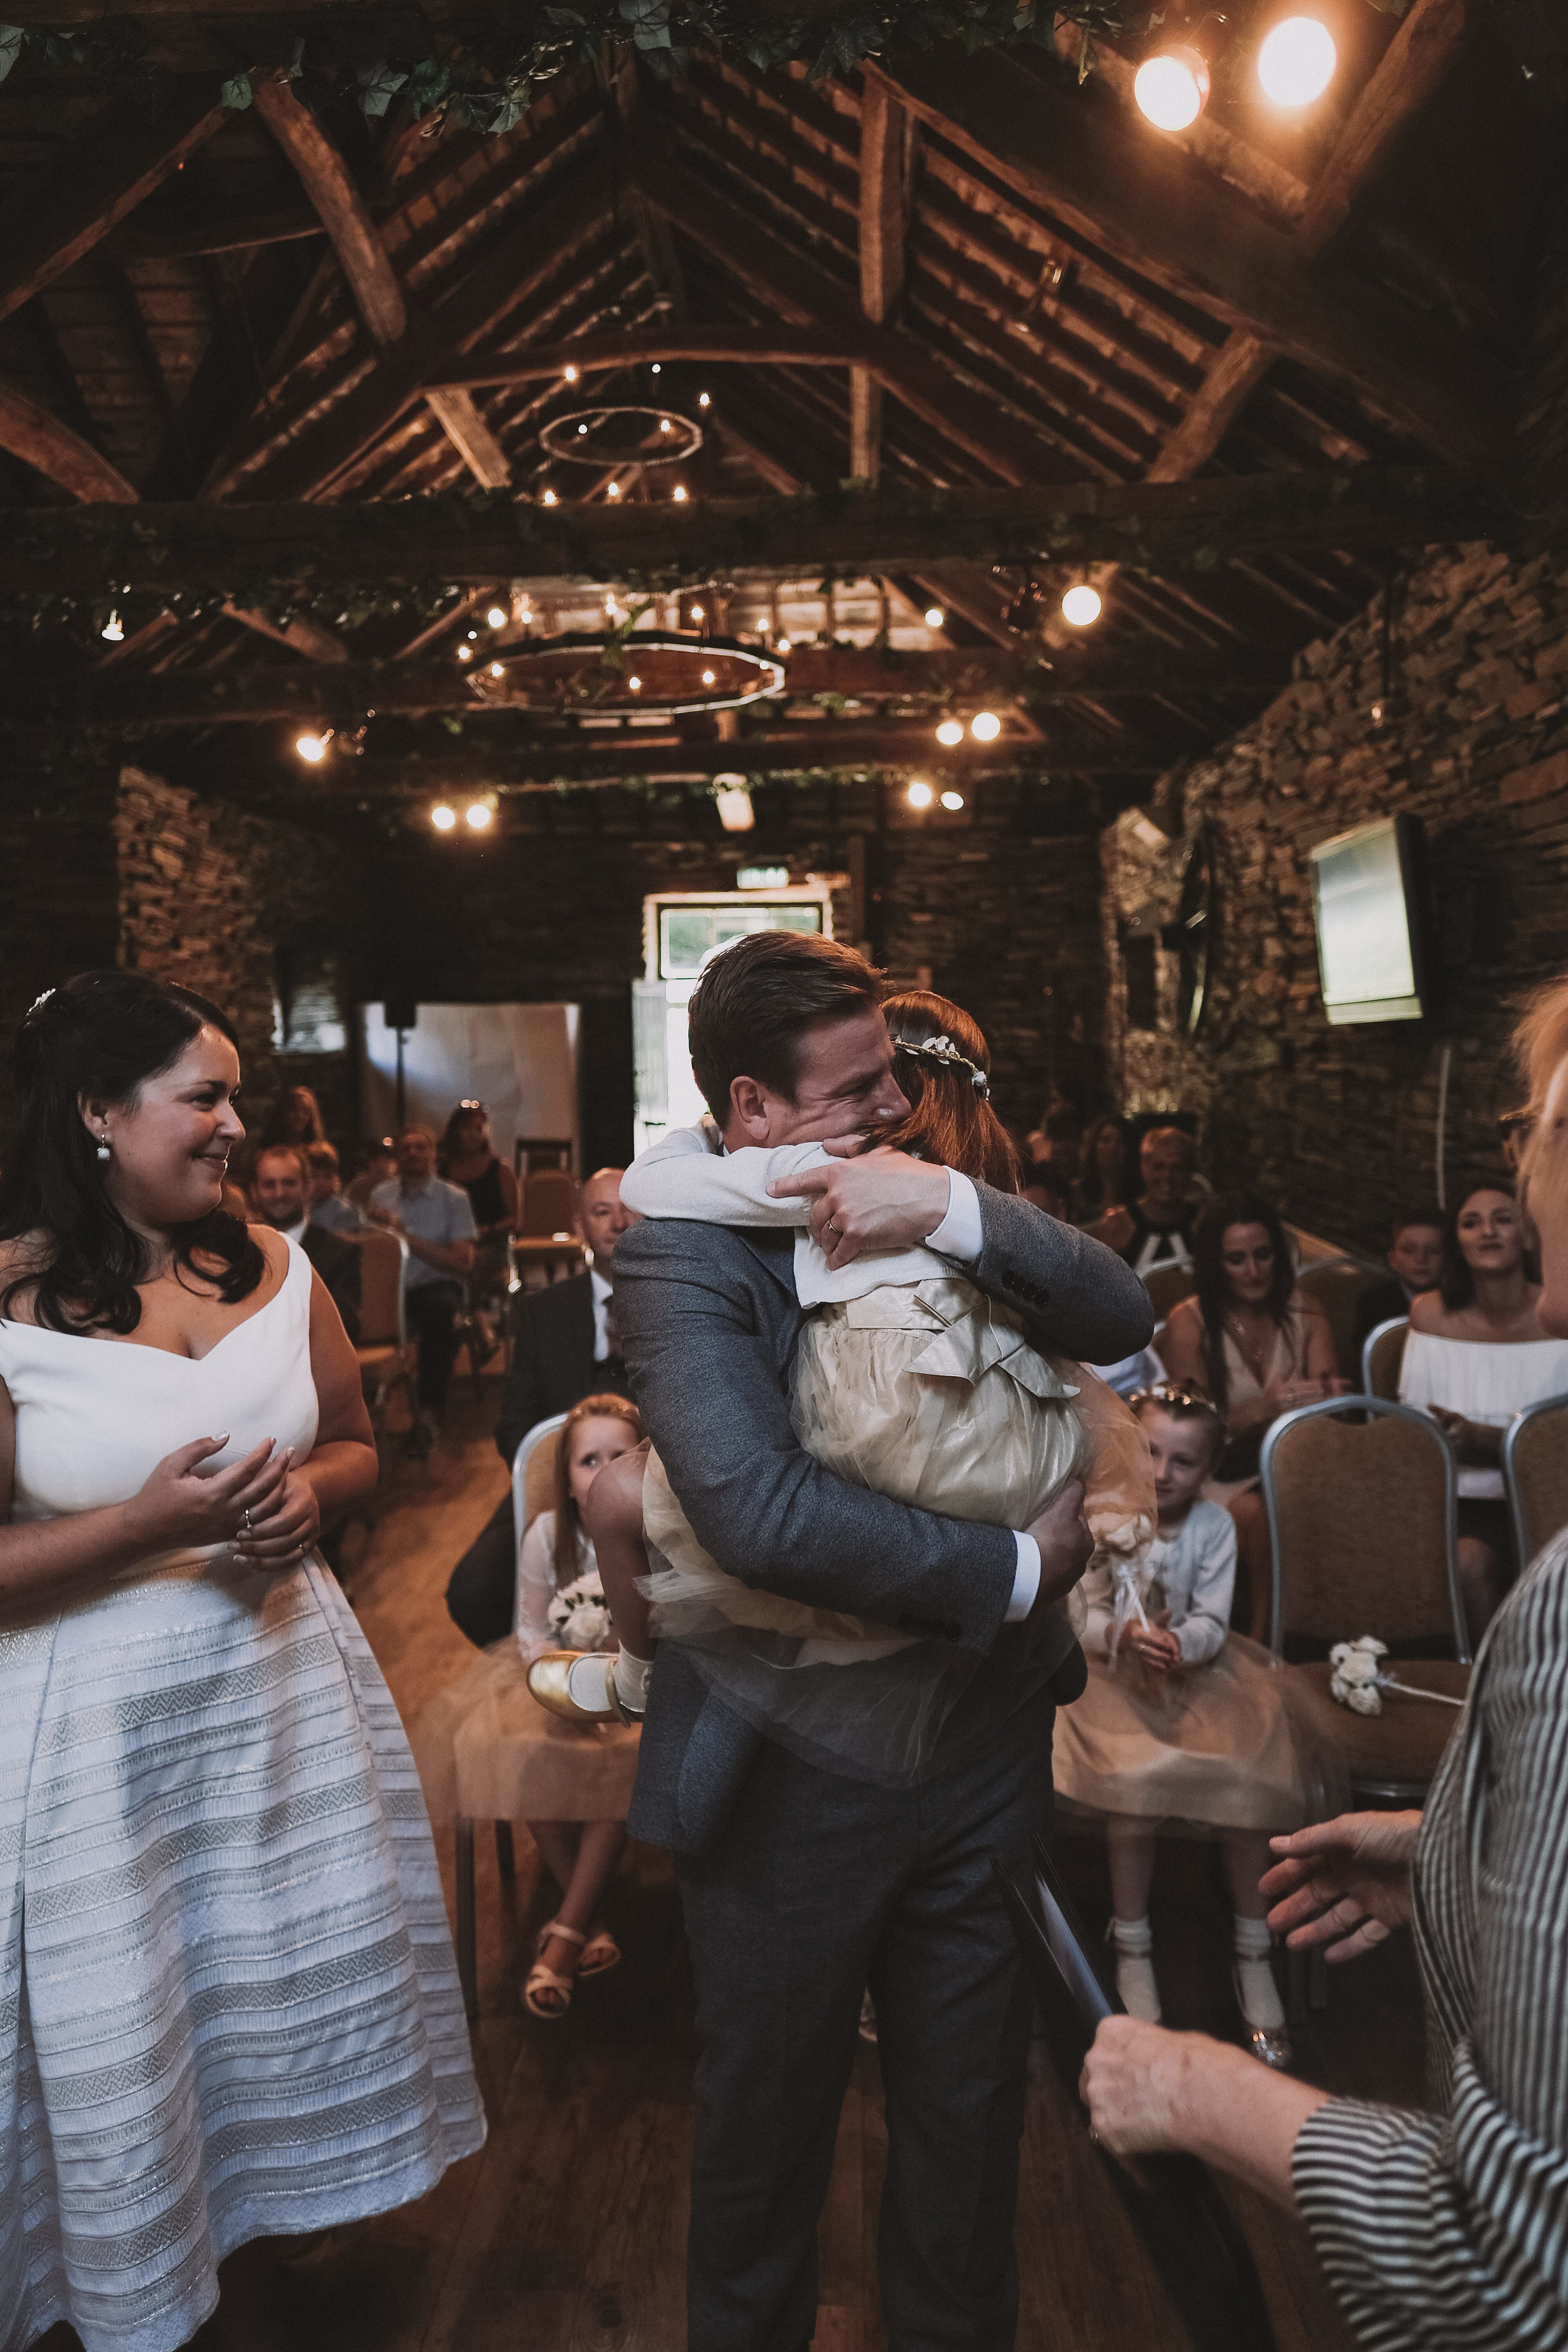 The groom hugs his daughter during the wedding ceremony at Julia and Darren's Lake District wedding by Barry Forshaw